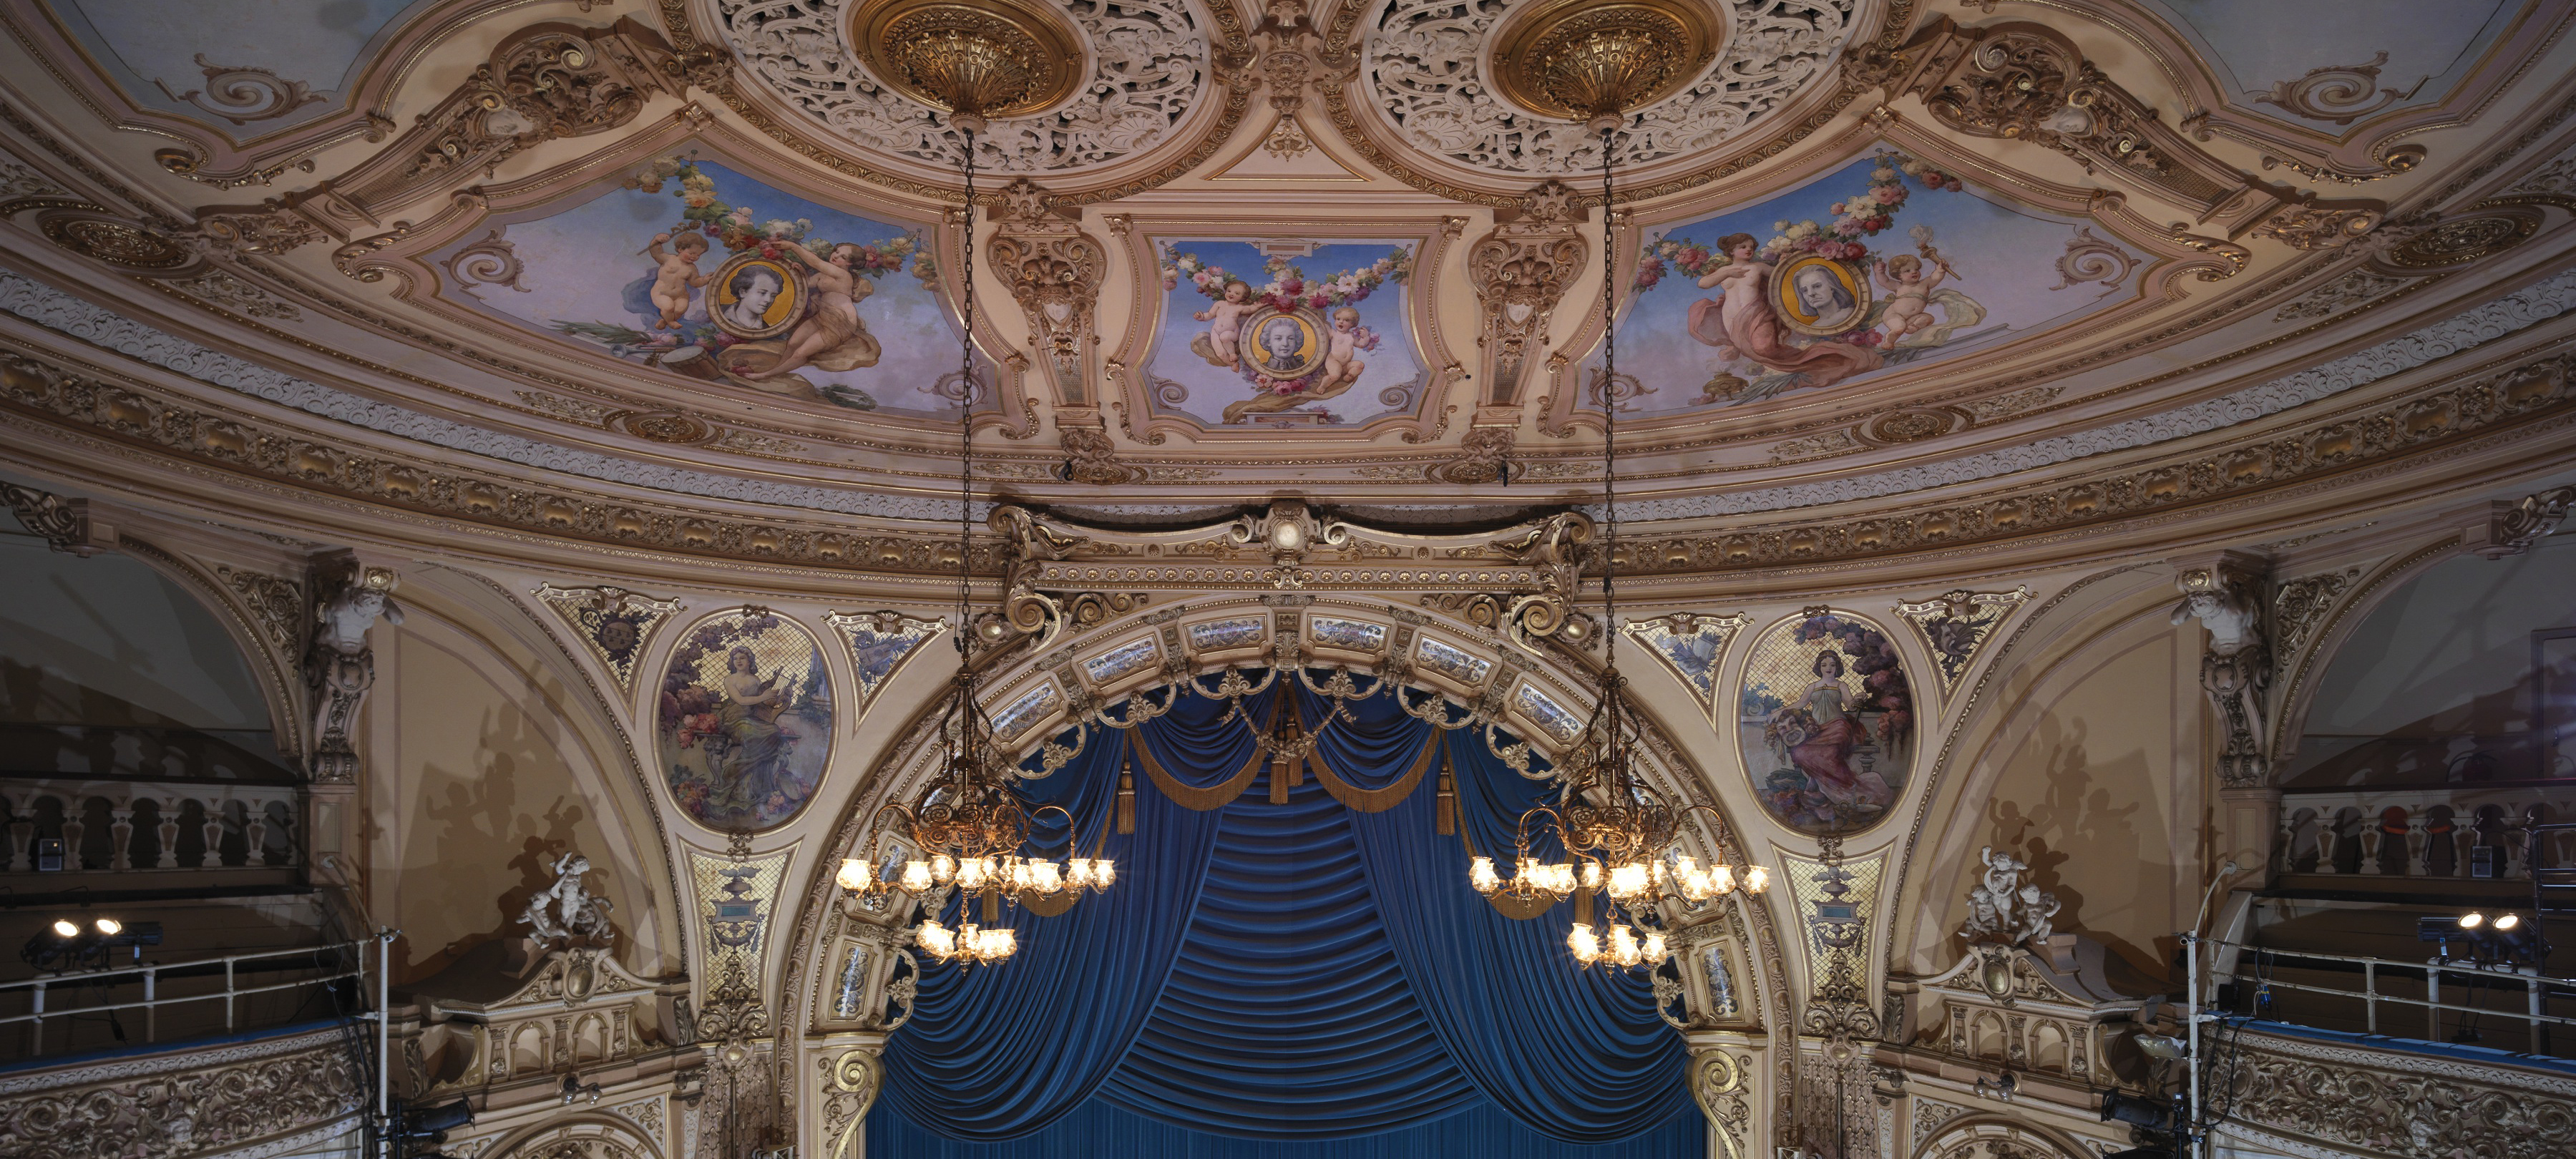 Our Architecture Blackpool Grand Theatre